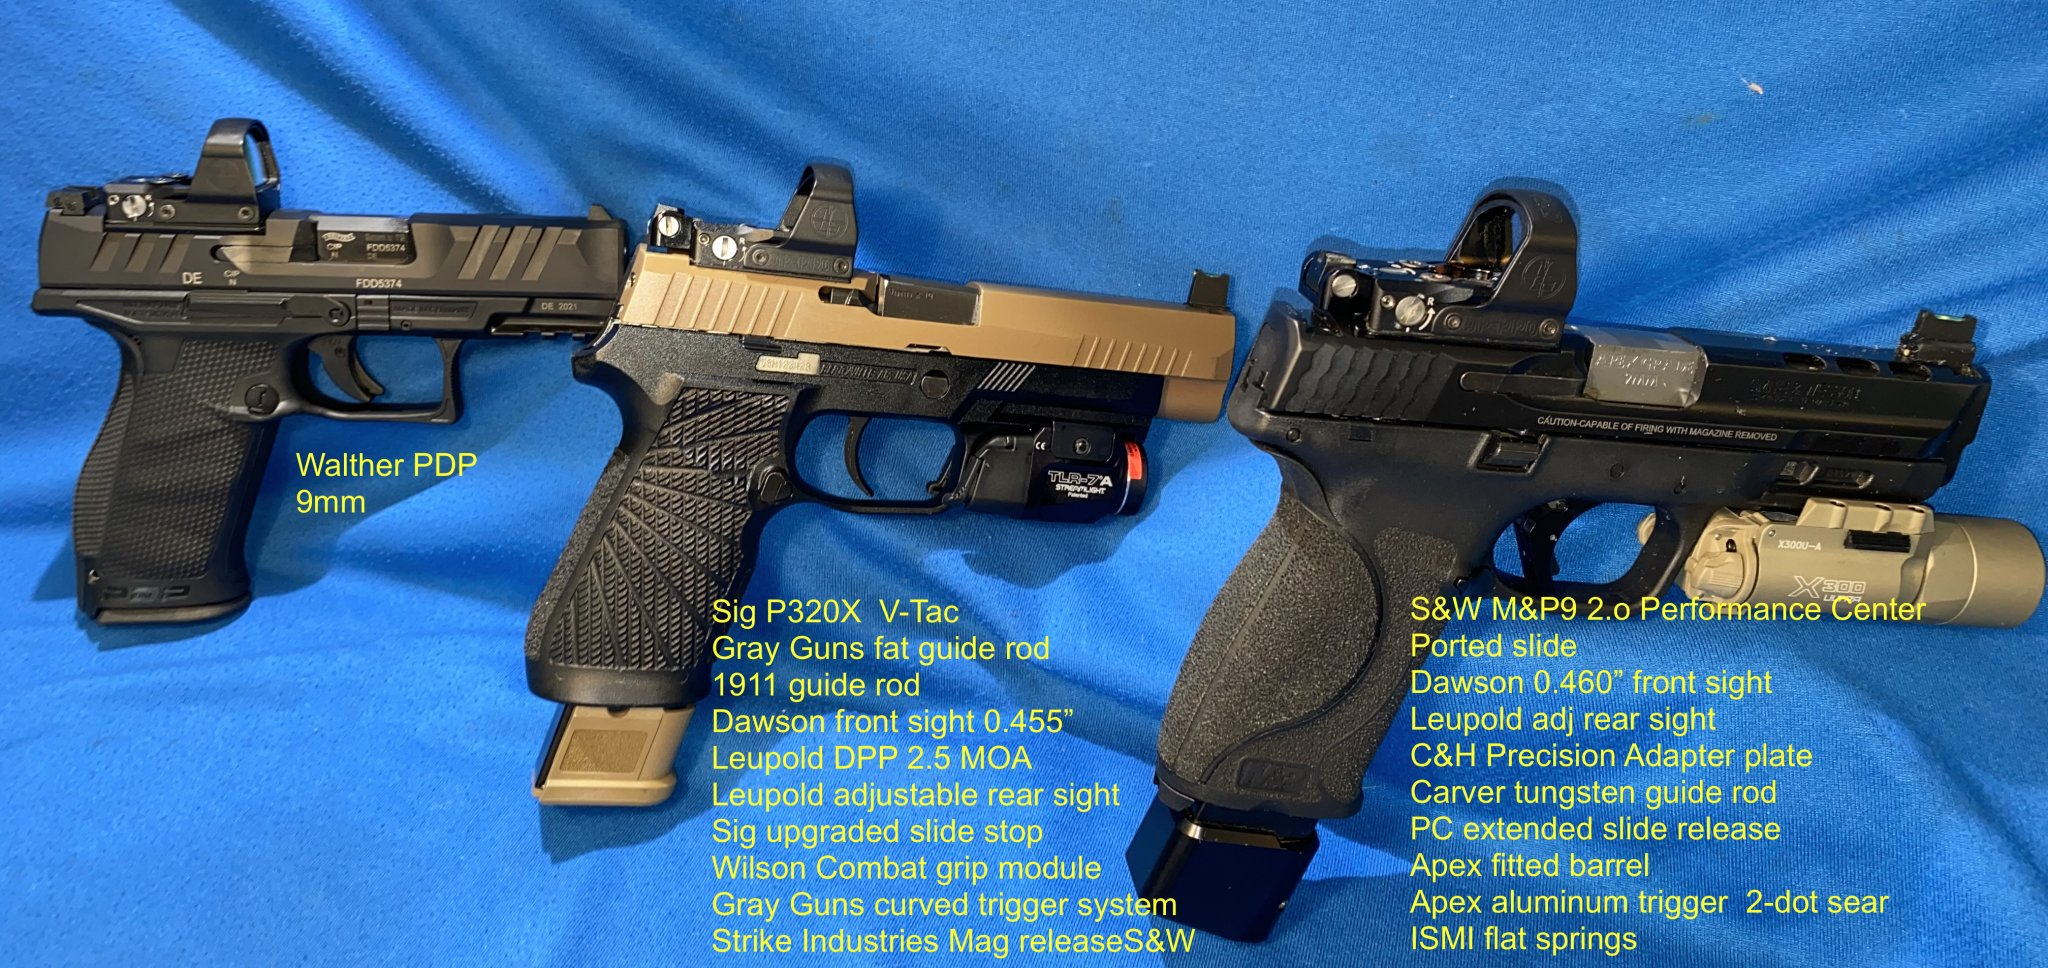 IMG_8638Walther PDP Sig P320 M&P9 2.0 PC with Leupold Delta Point Pro 2.5 MOA and Holsters 03....jpg